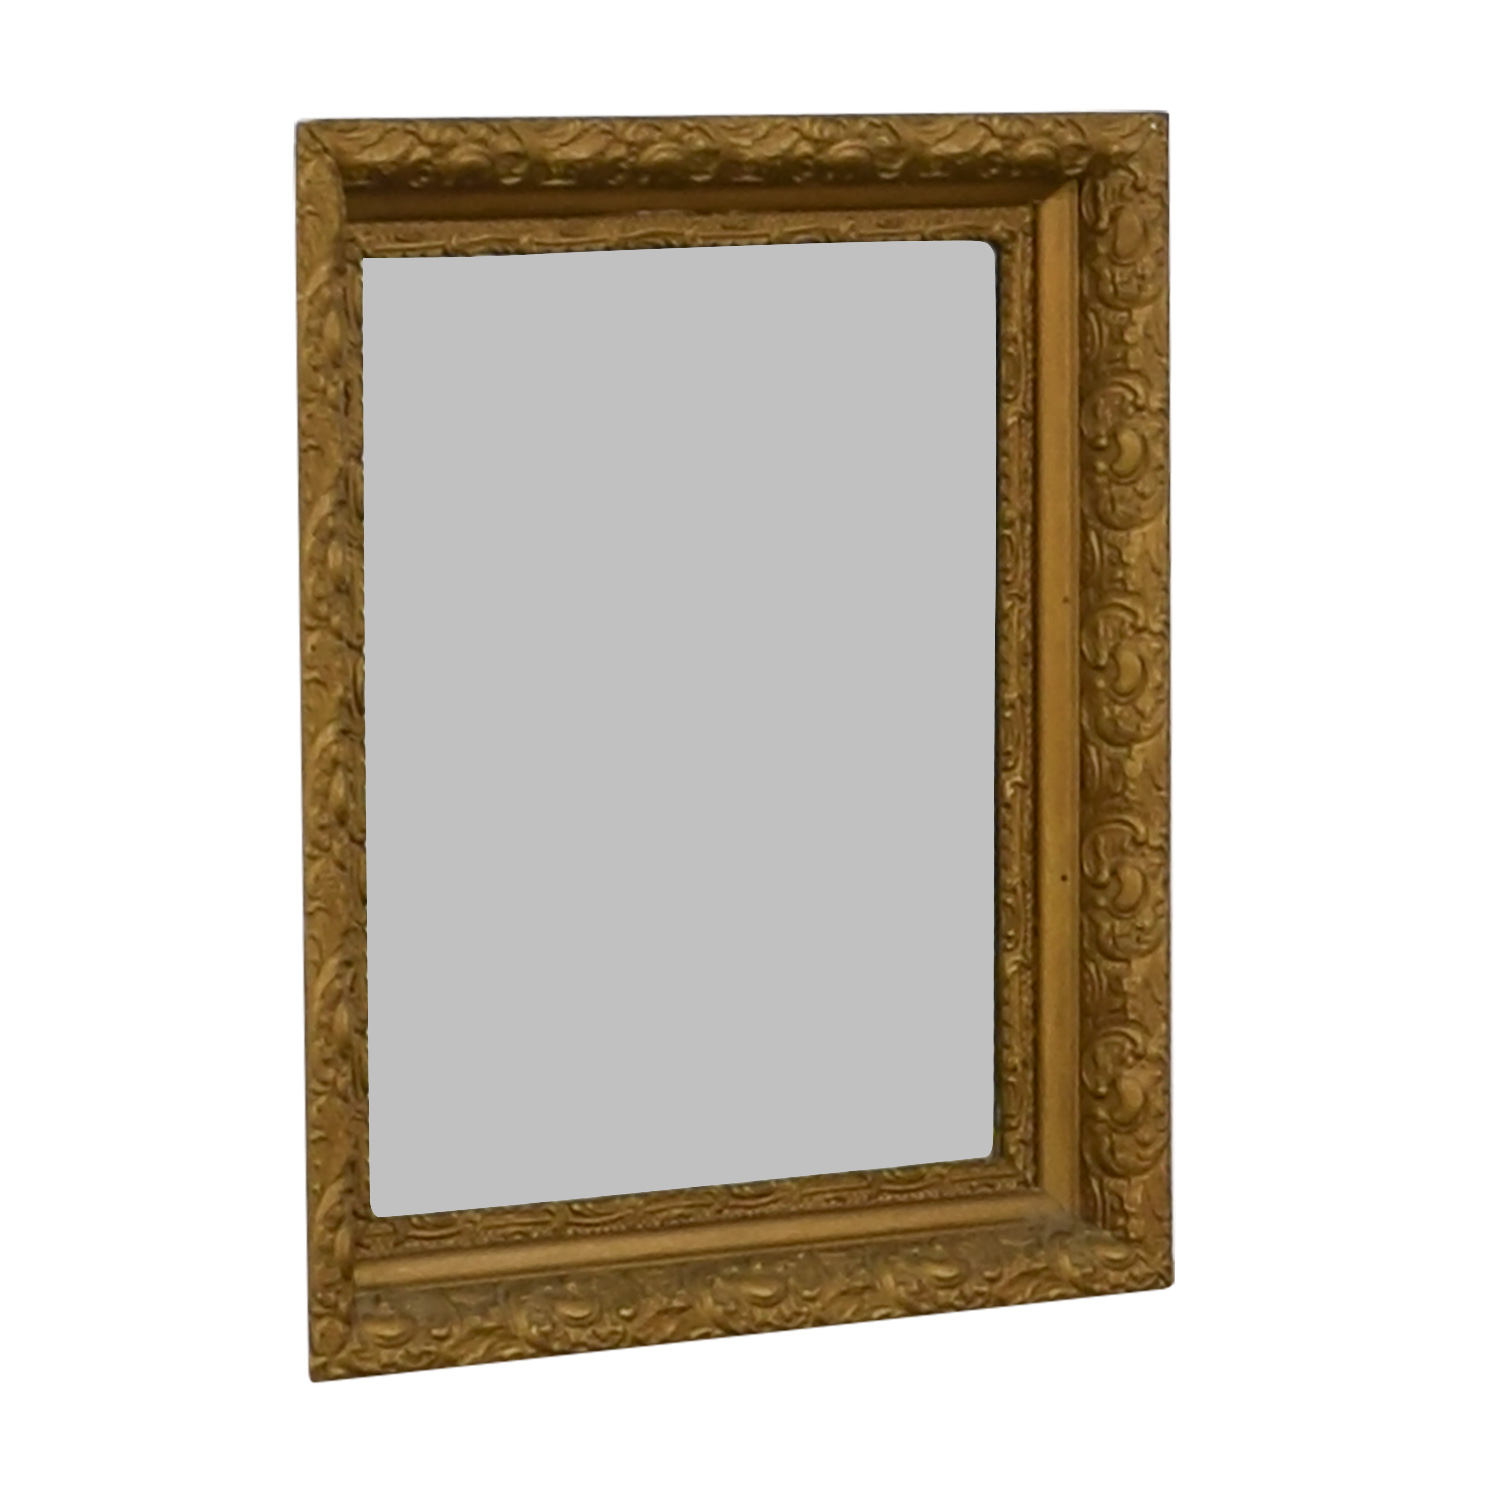 63% OFF - Antique Gold Leaf Frame Mirror / Decor